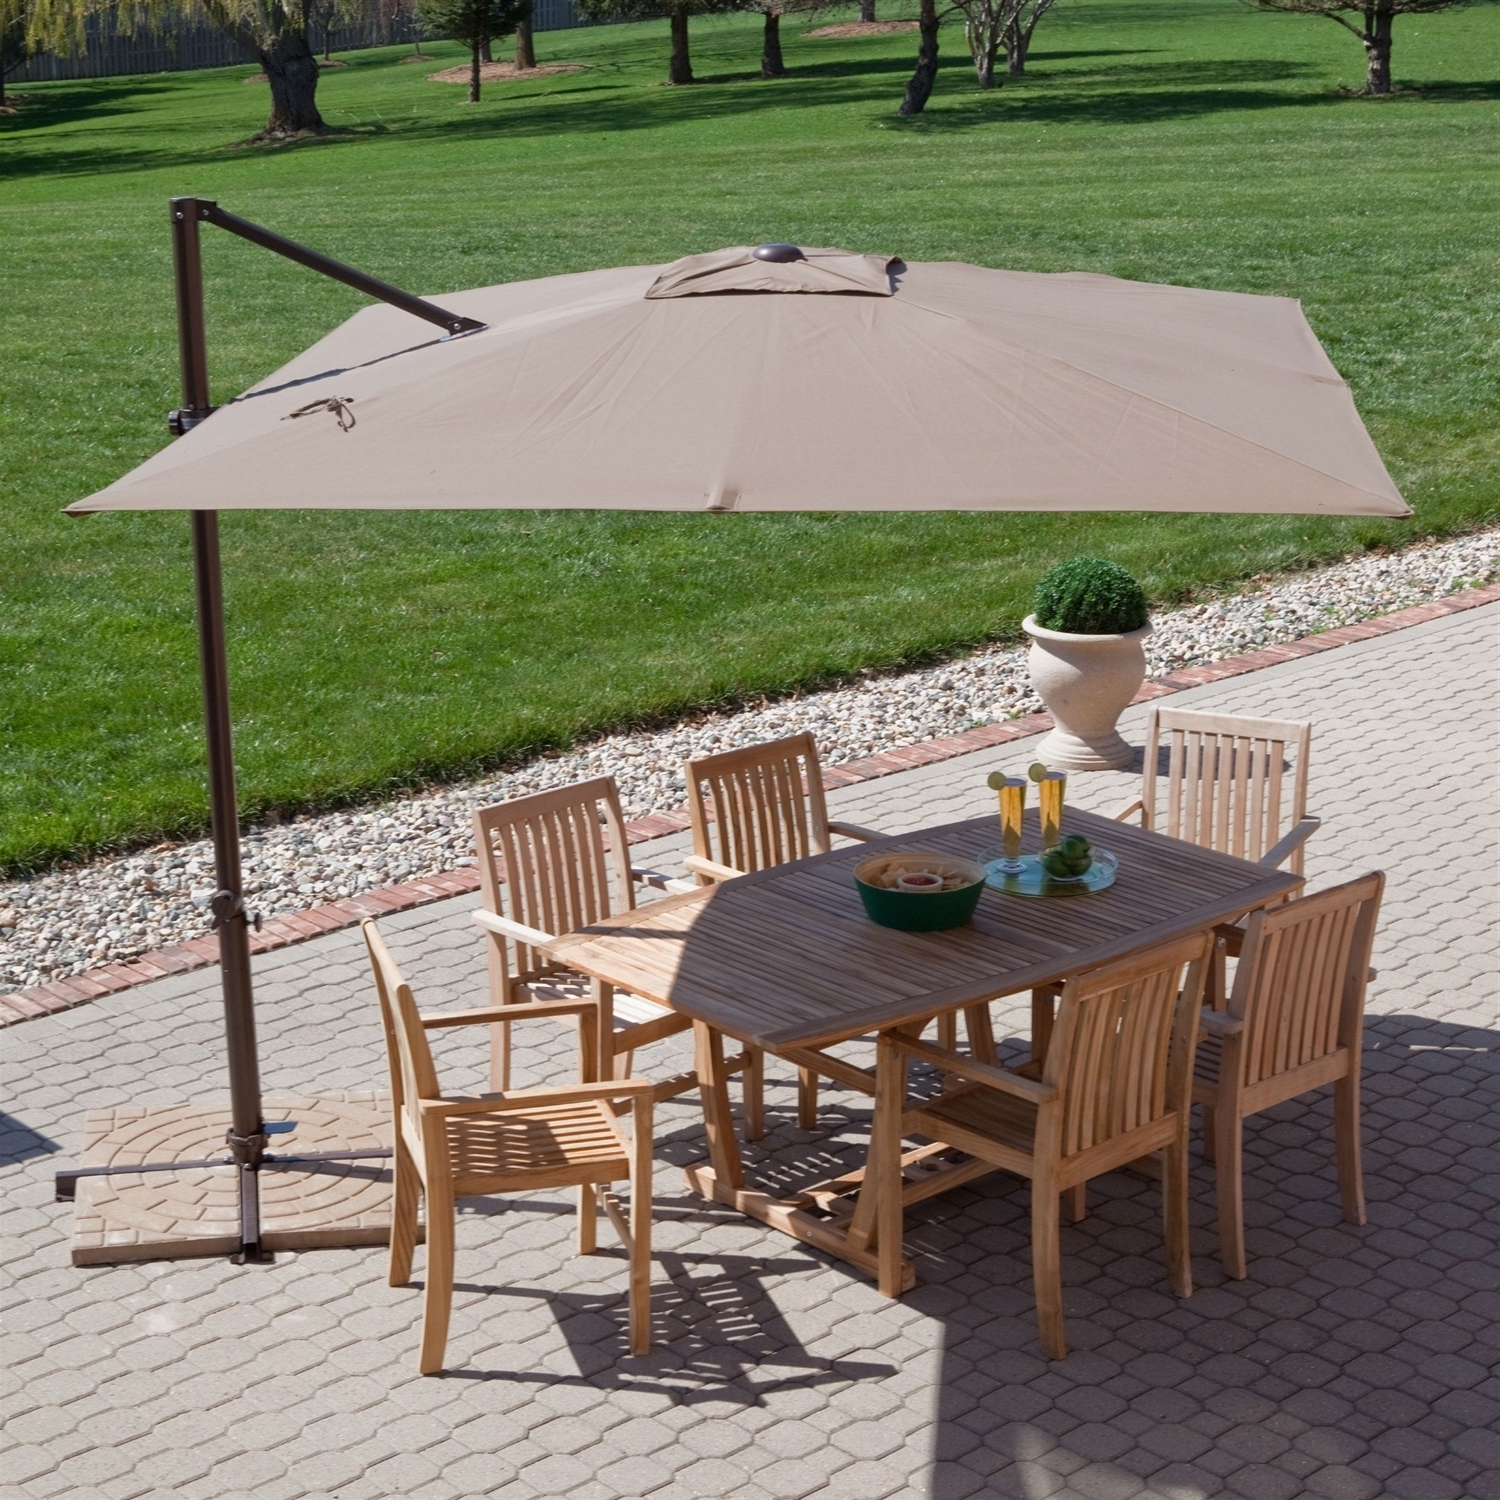 Trendy A Guide To Buying Offset Patio Umbrella – Blogbeen Pertaining To Offset Patio Umbrellas (Gallery 5 of 20)